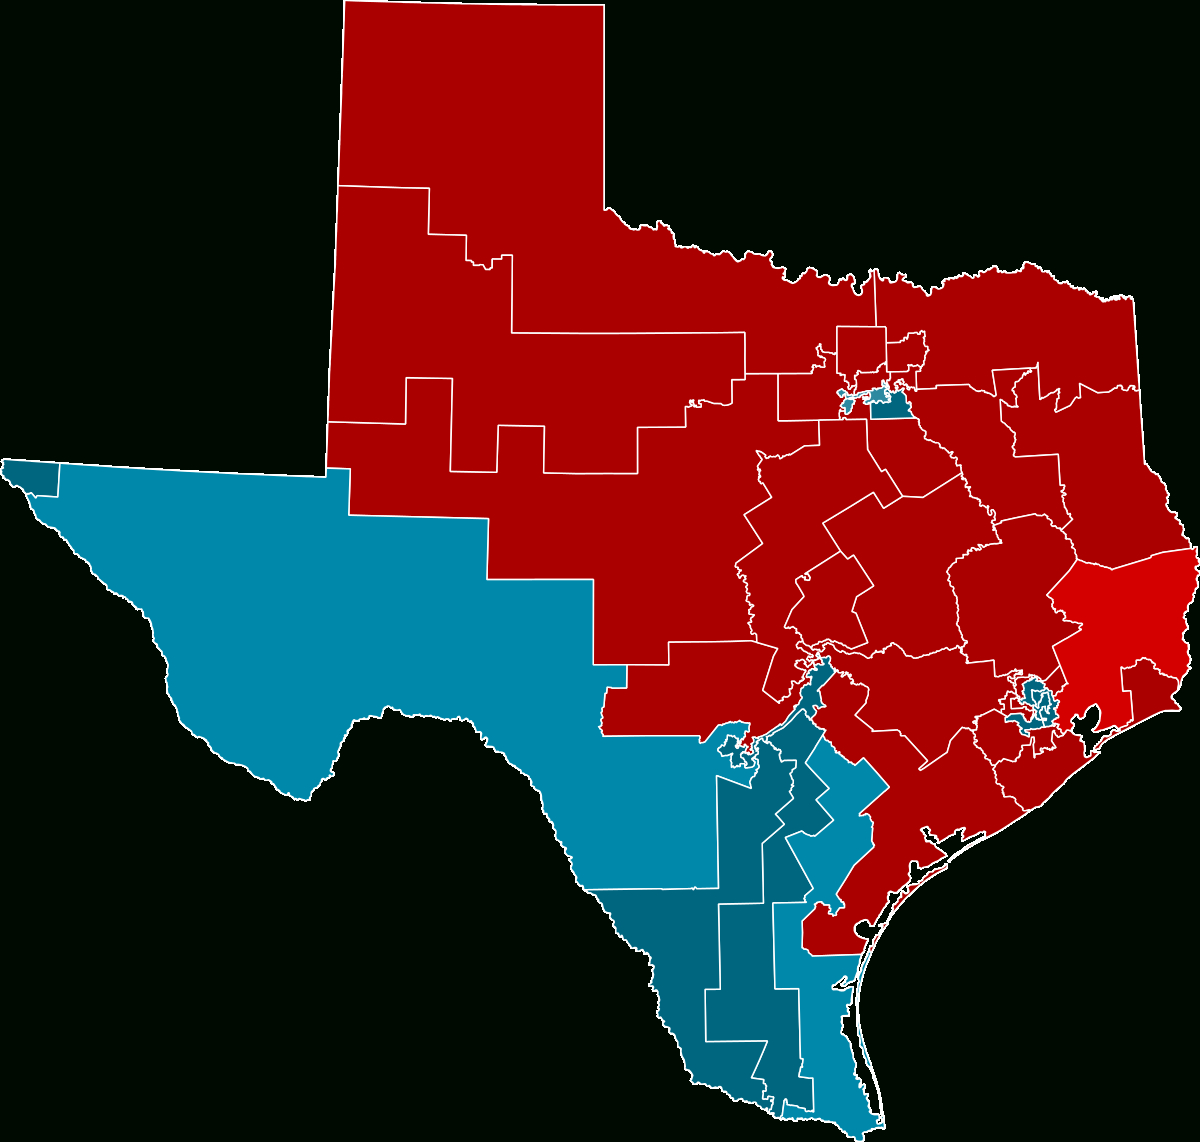 2012 United States House Of Representatives Elections In Texas - Texas Representatives District Map